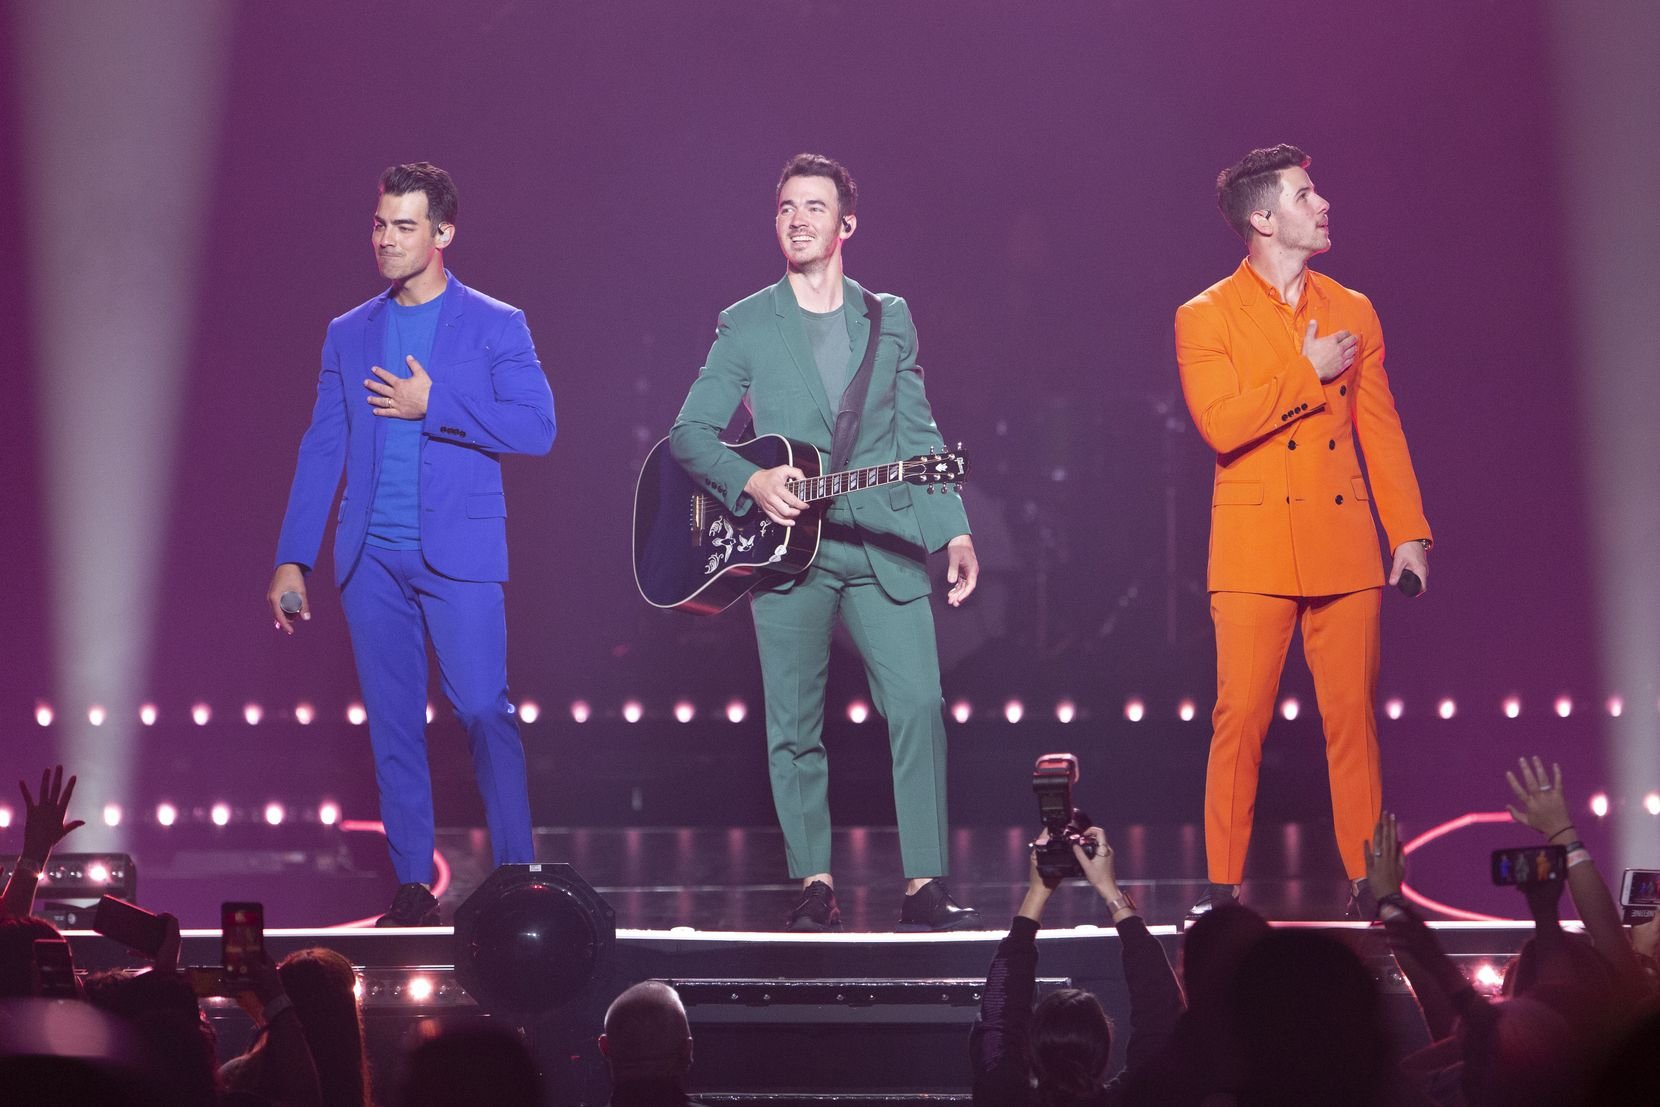 Jonas Brothers members Joe Jonas, left, Kevin Jonas, middle, and Nick Jonas, right, acknowledge the crowd after the opening song at American Airlines Center in Dallas, Texas on Sept. 25, 2019.